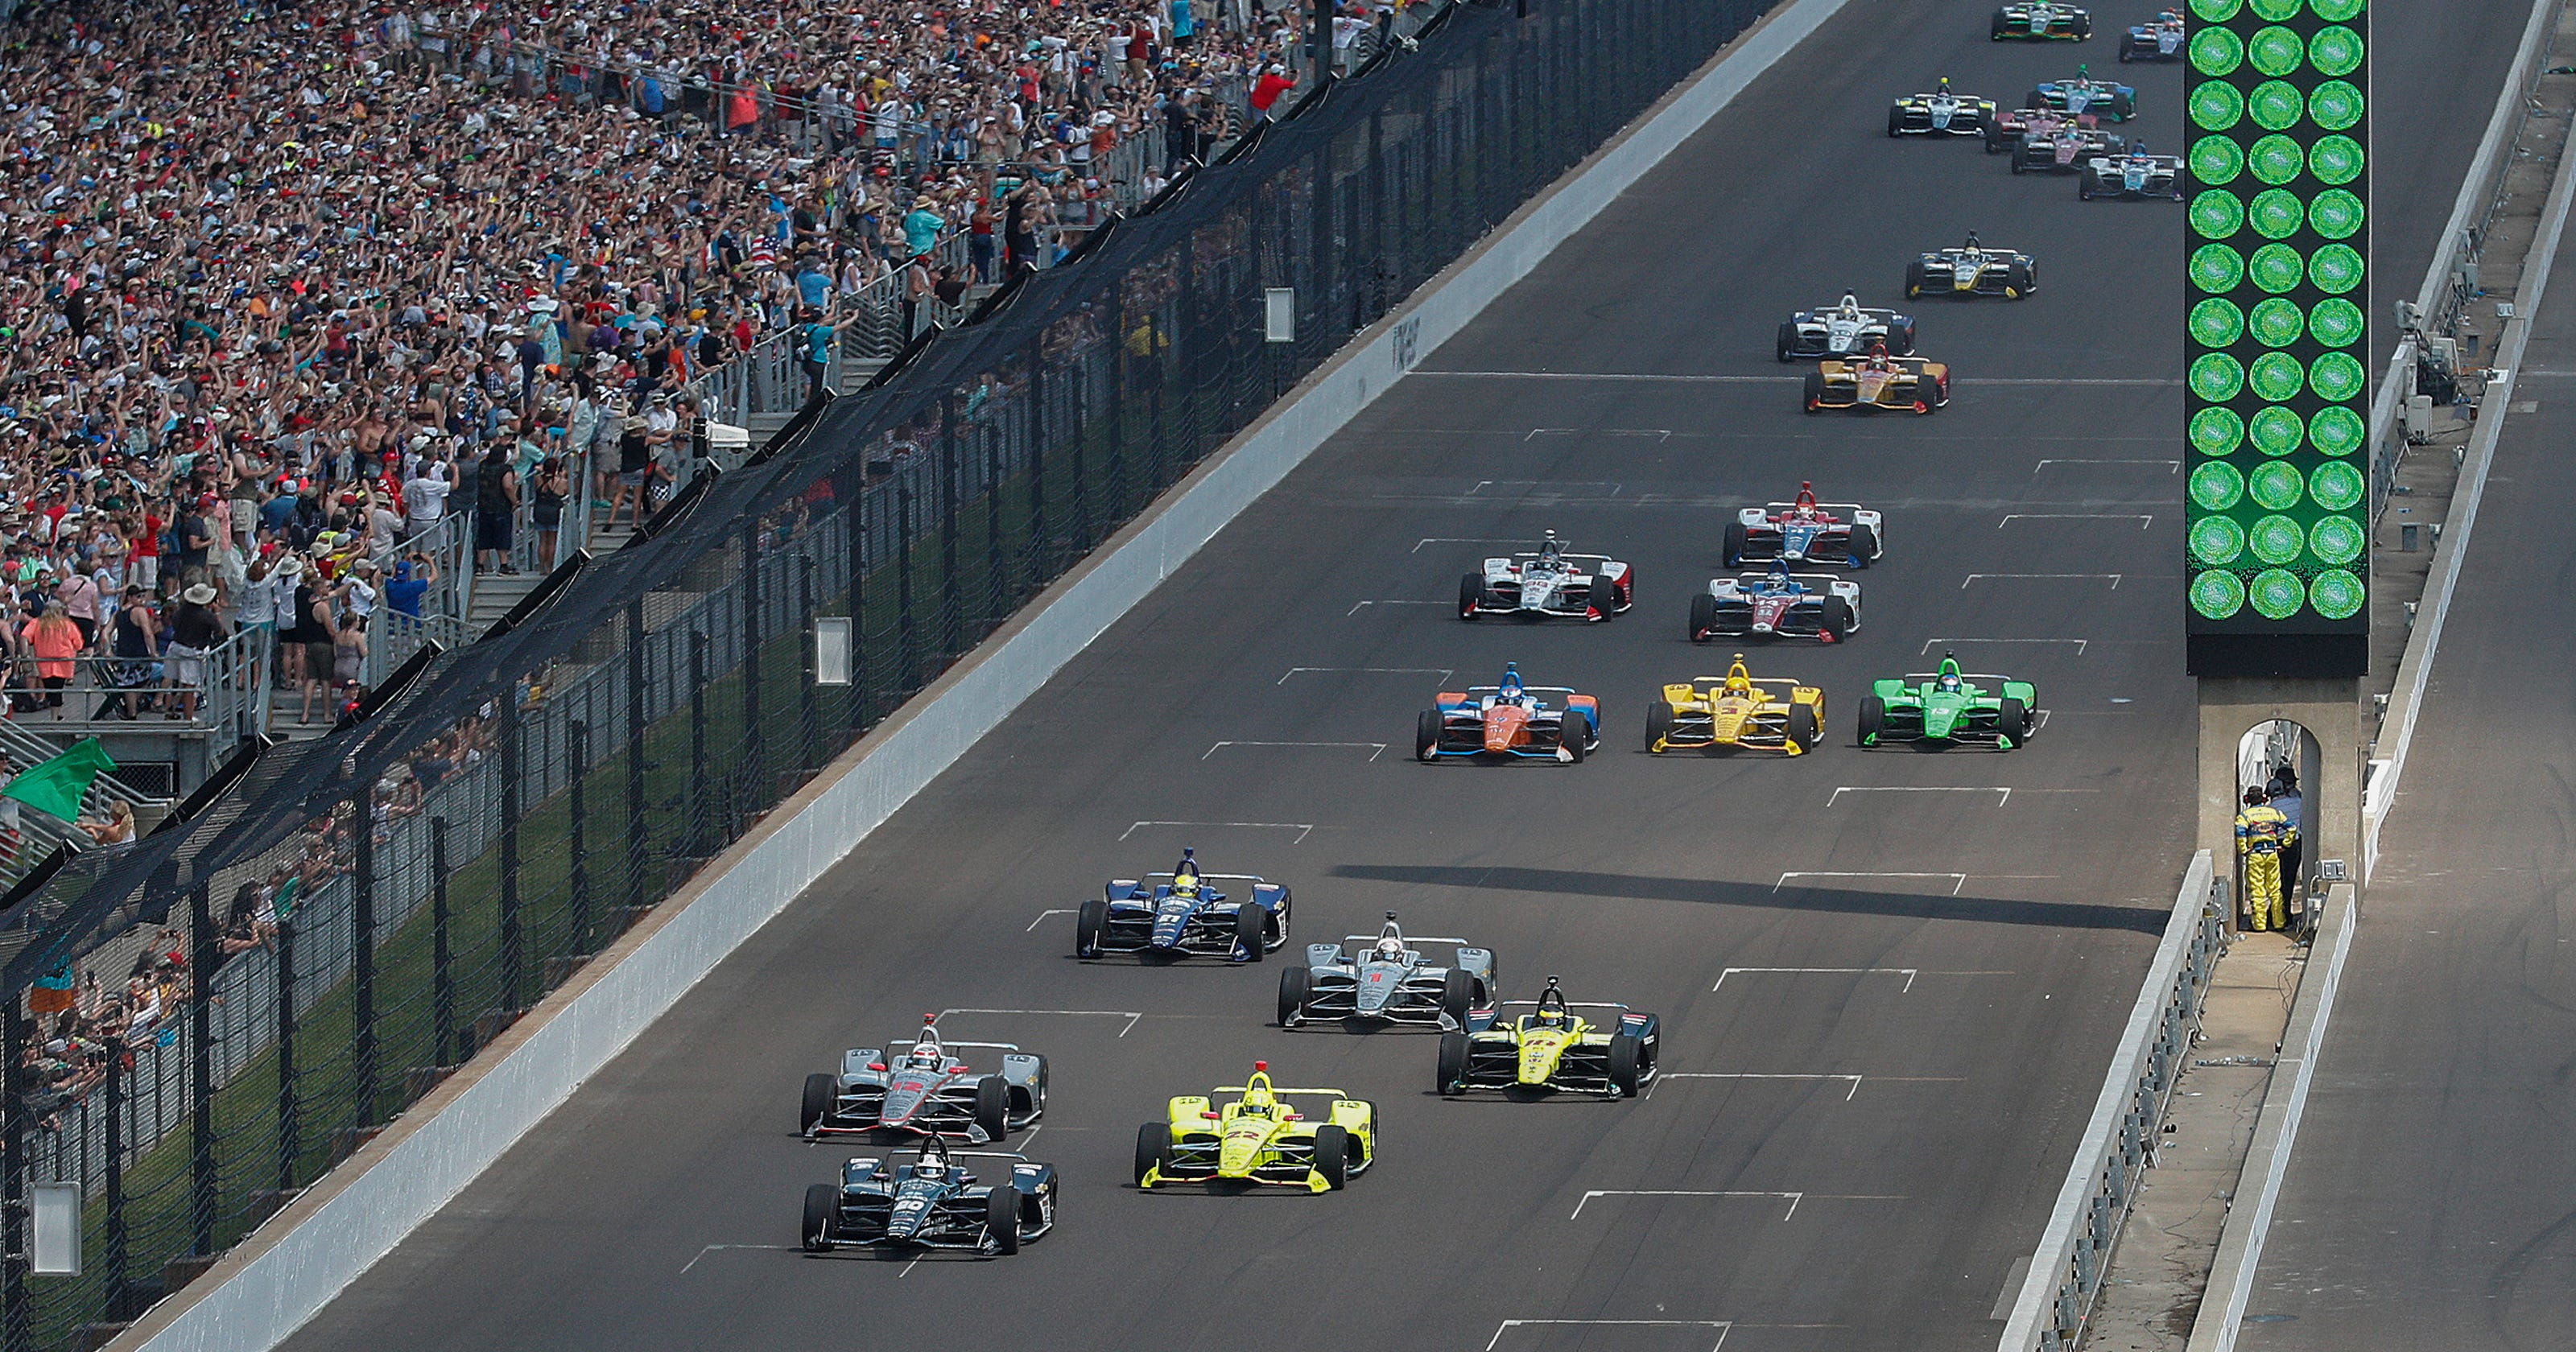 Indy 500 schedule: What is the start time for Indy 500 and more